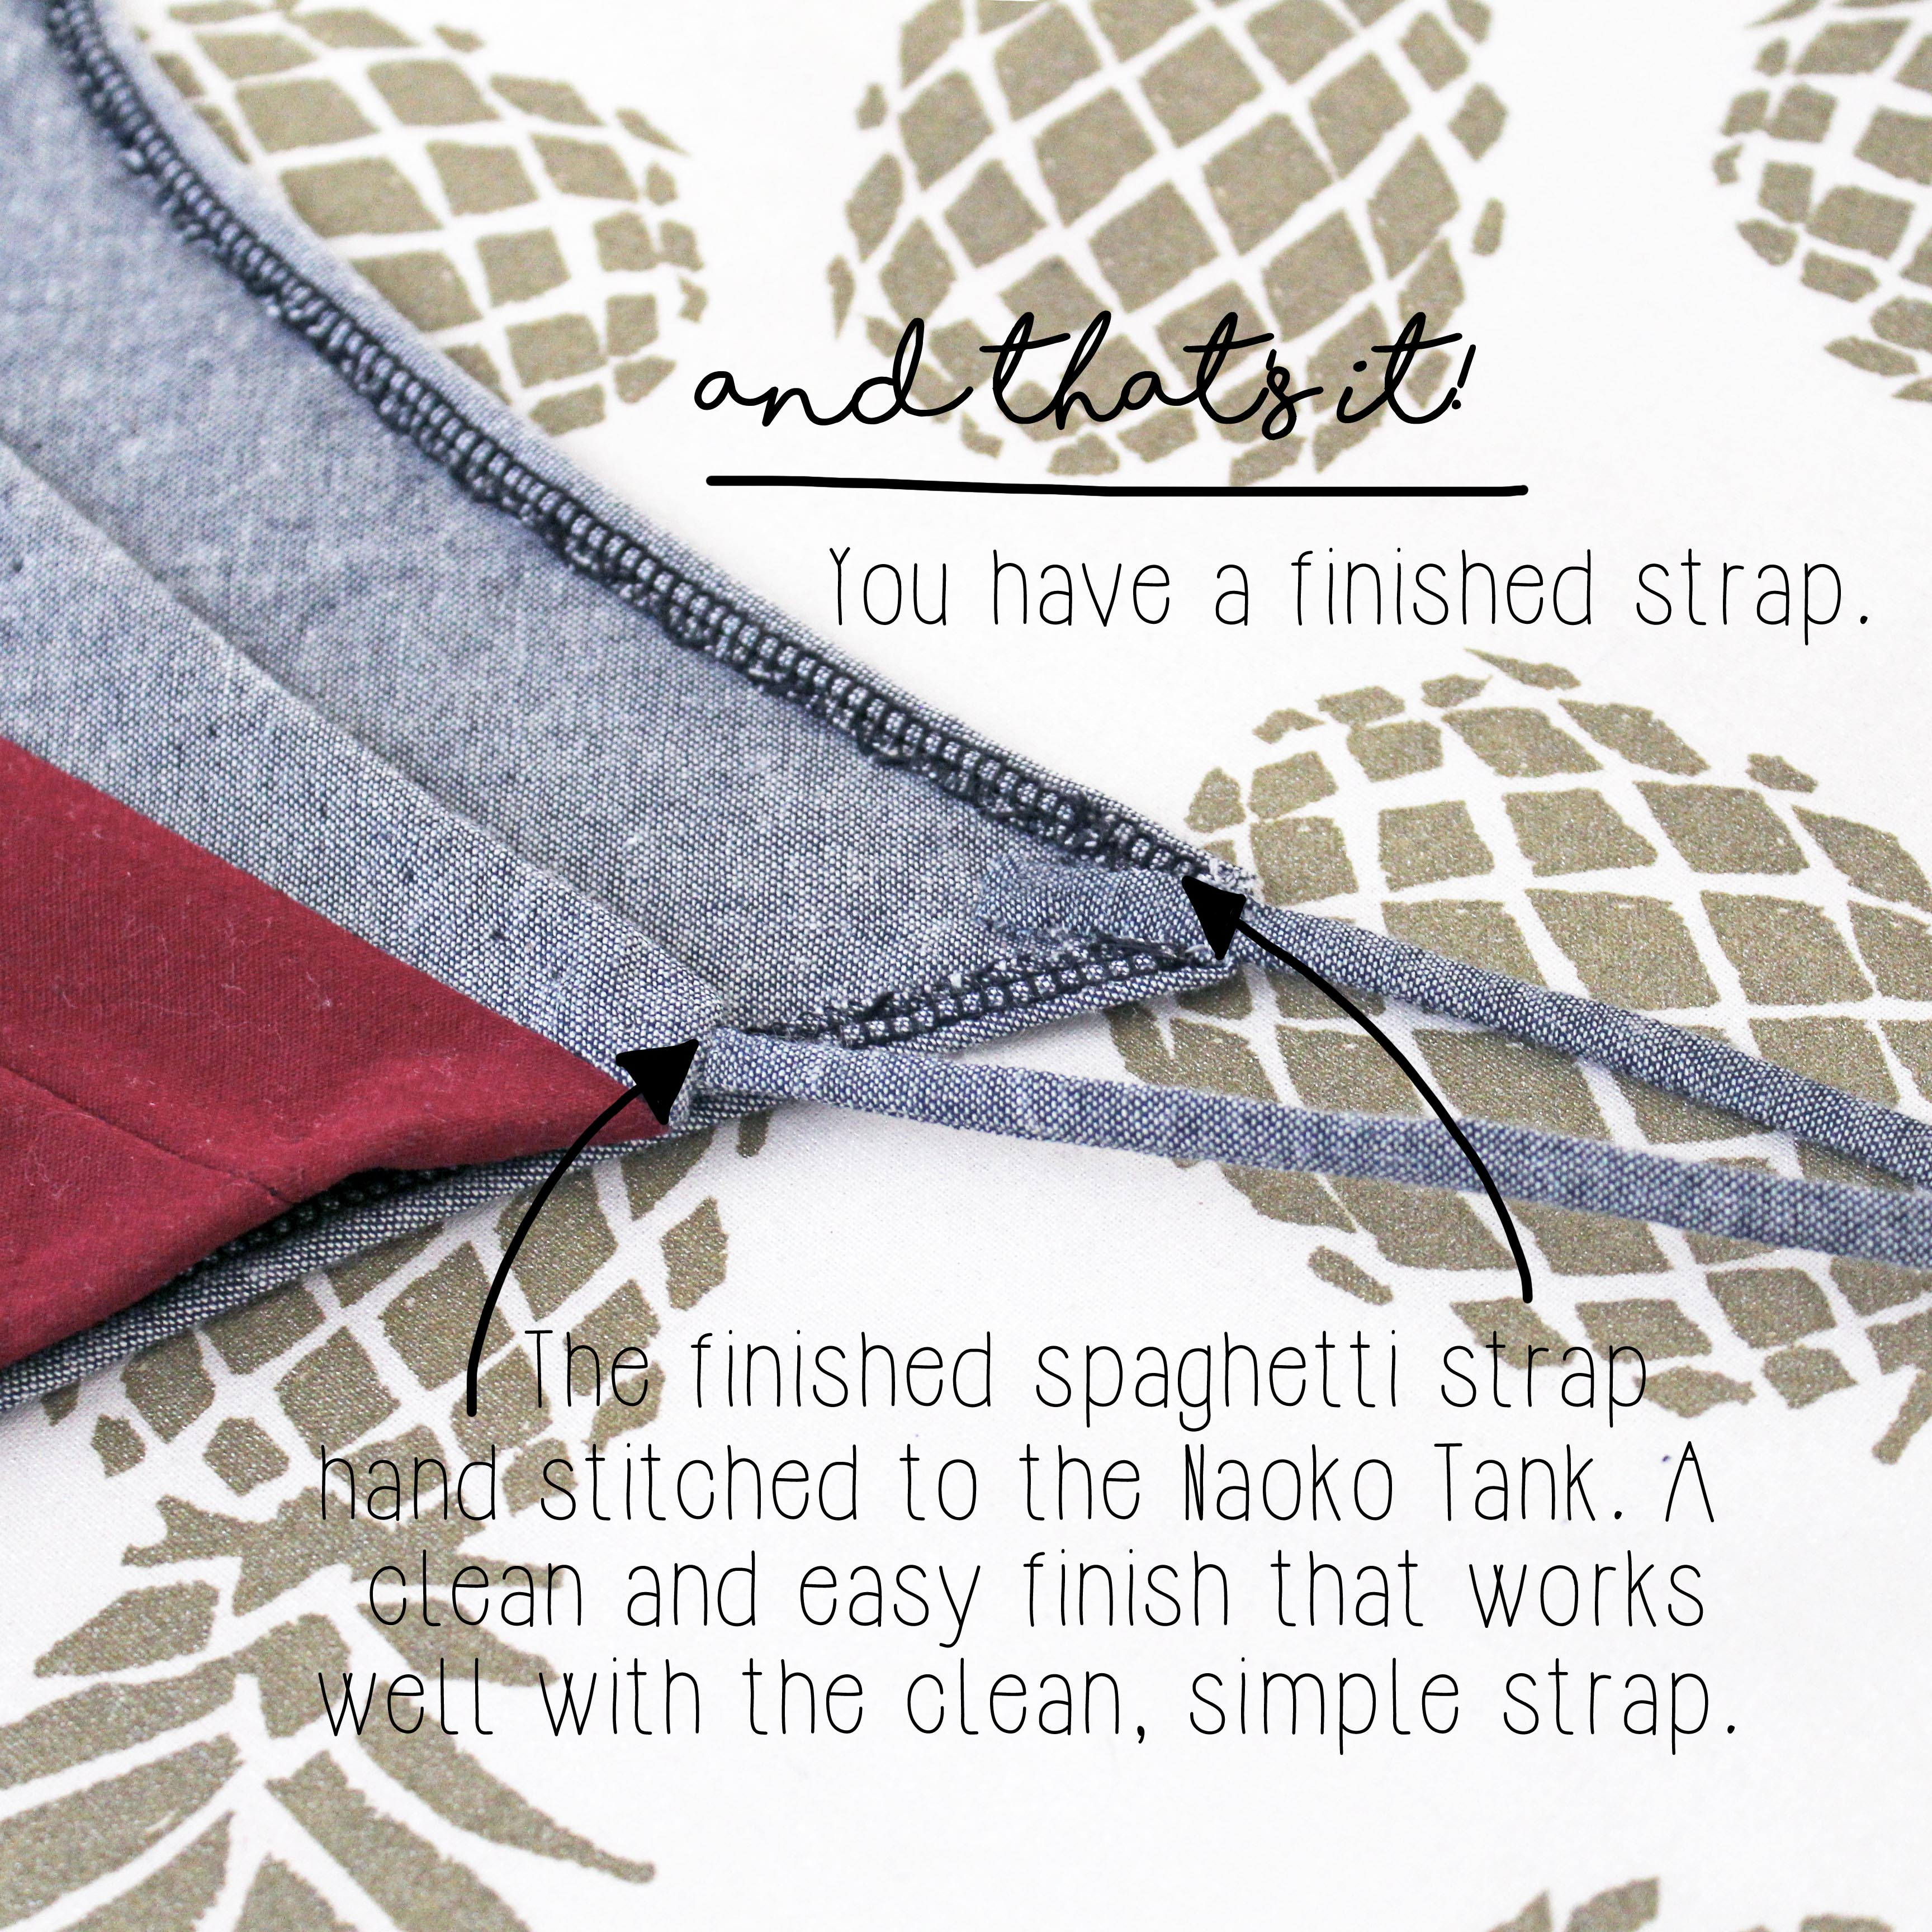 The Naoko Tank Sewing Tutorial Finished Spaghetti Strap